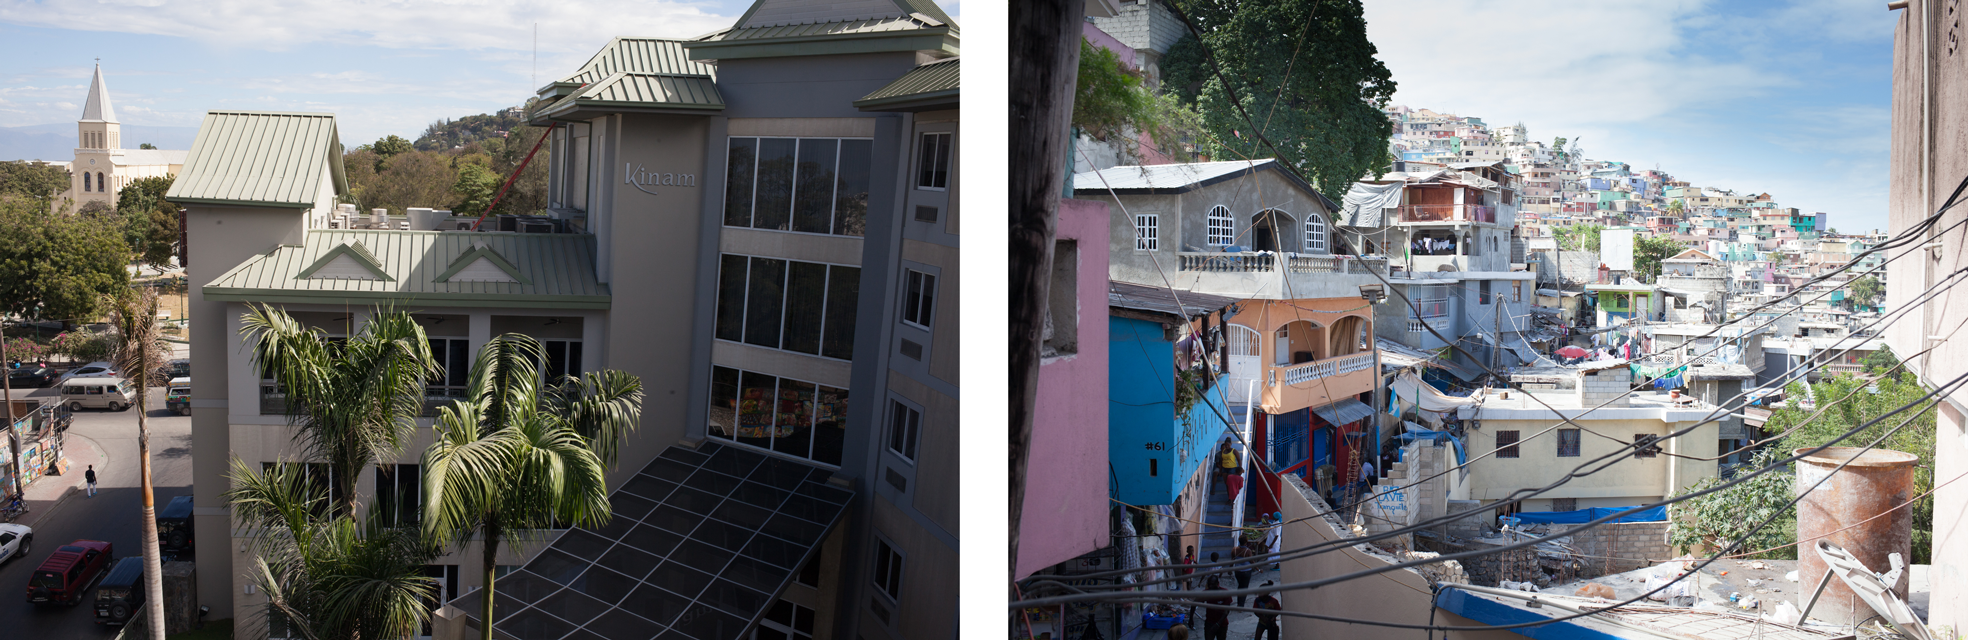 Kinam Hotel and a view of the slums. Only this visible corner of the Jalousie neighborhood were painted in a $1.4 million project.